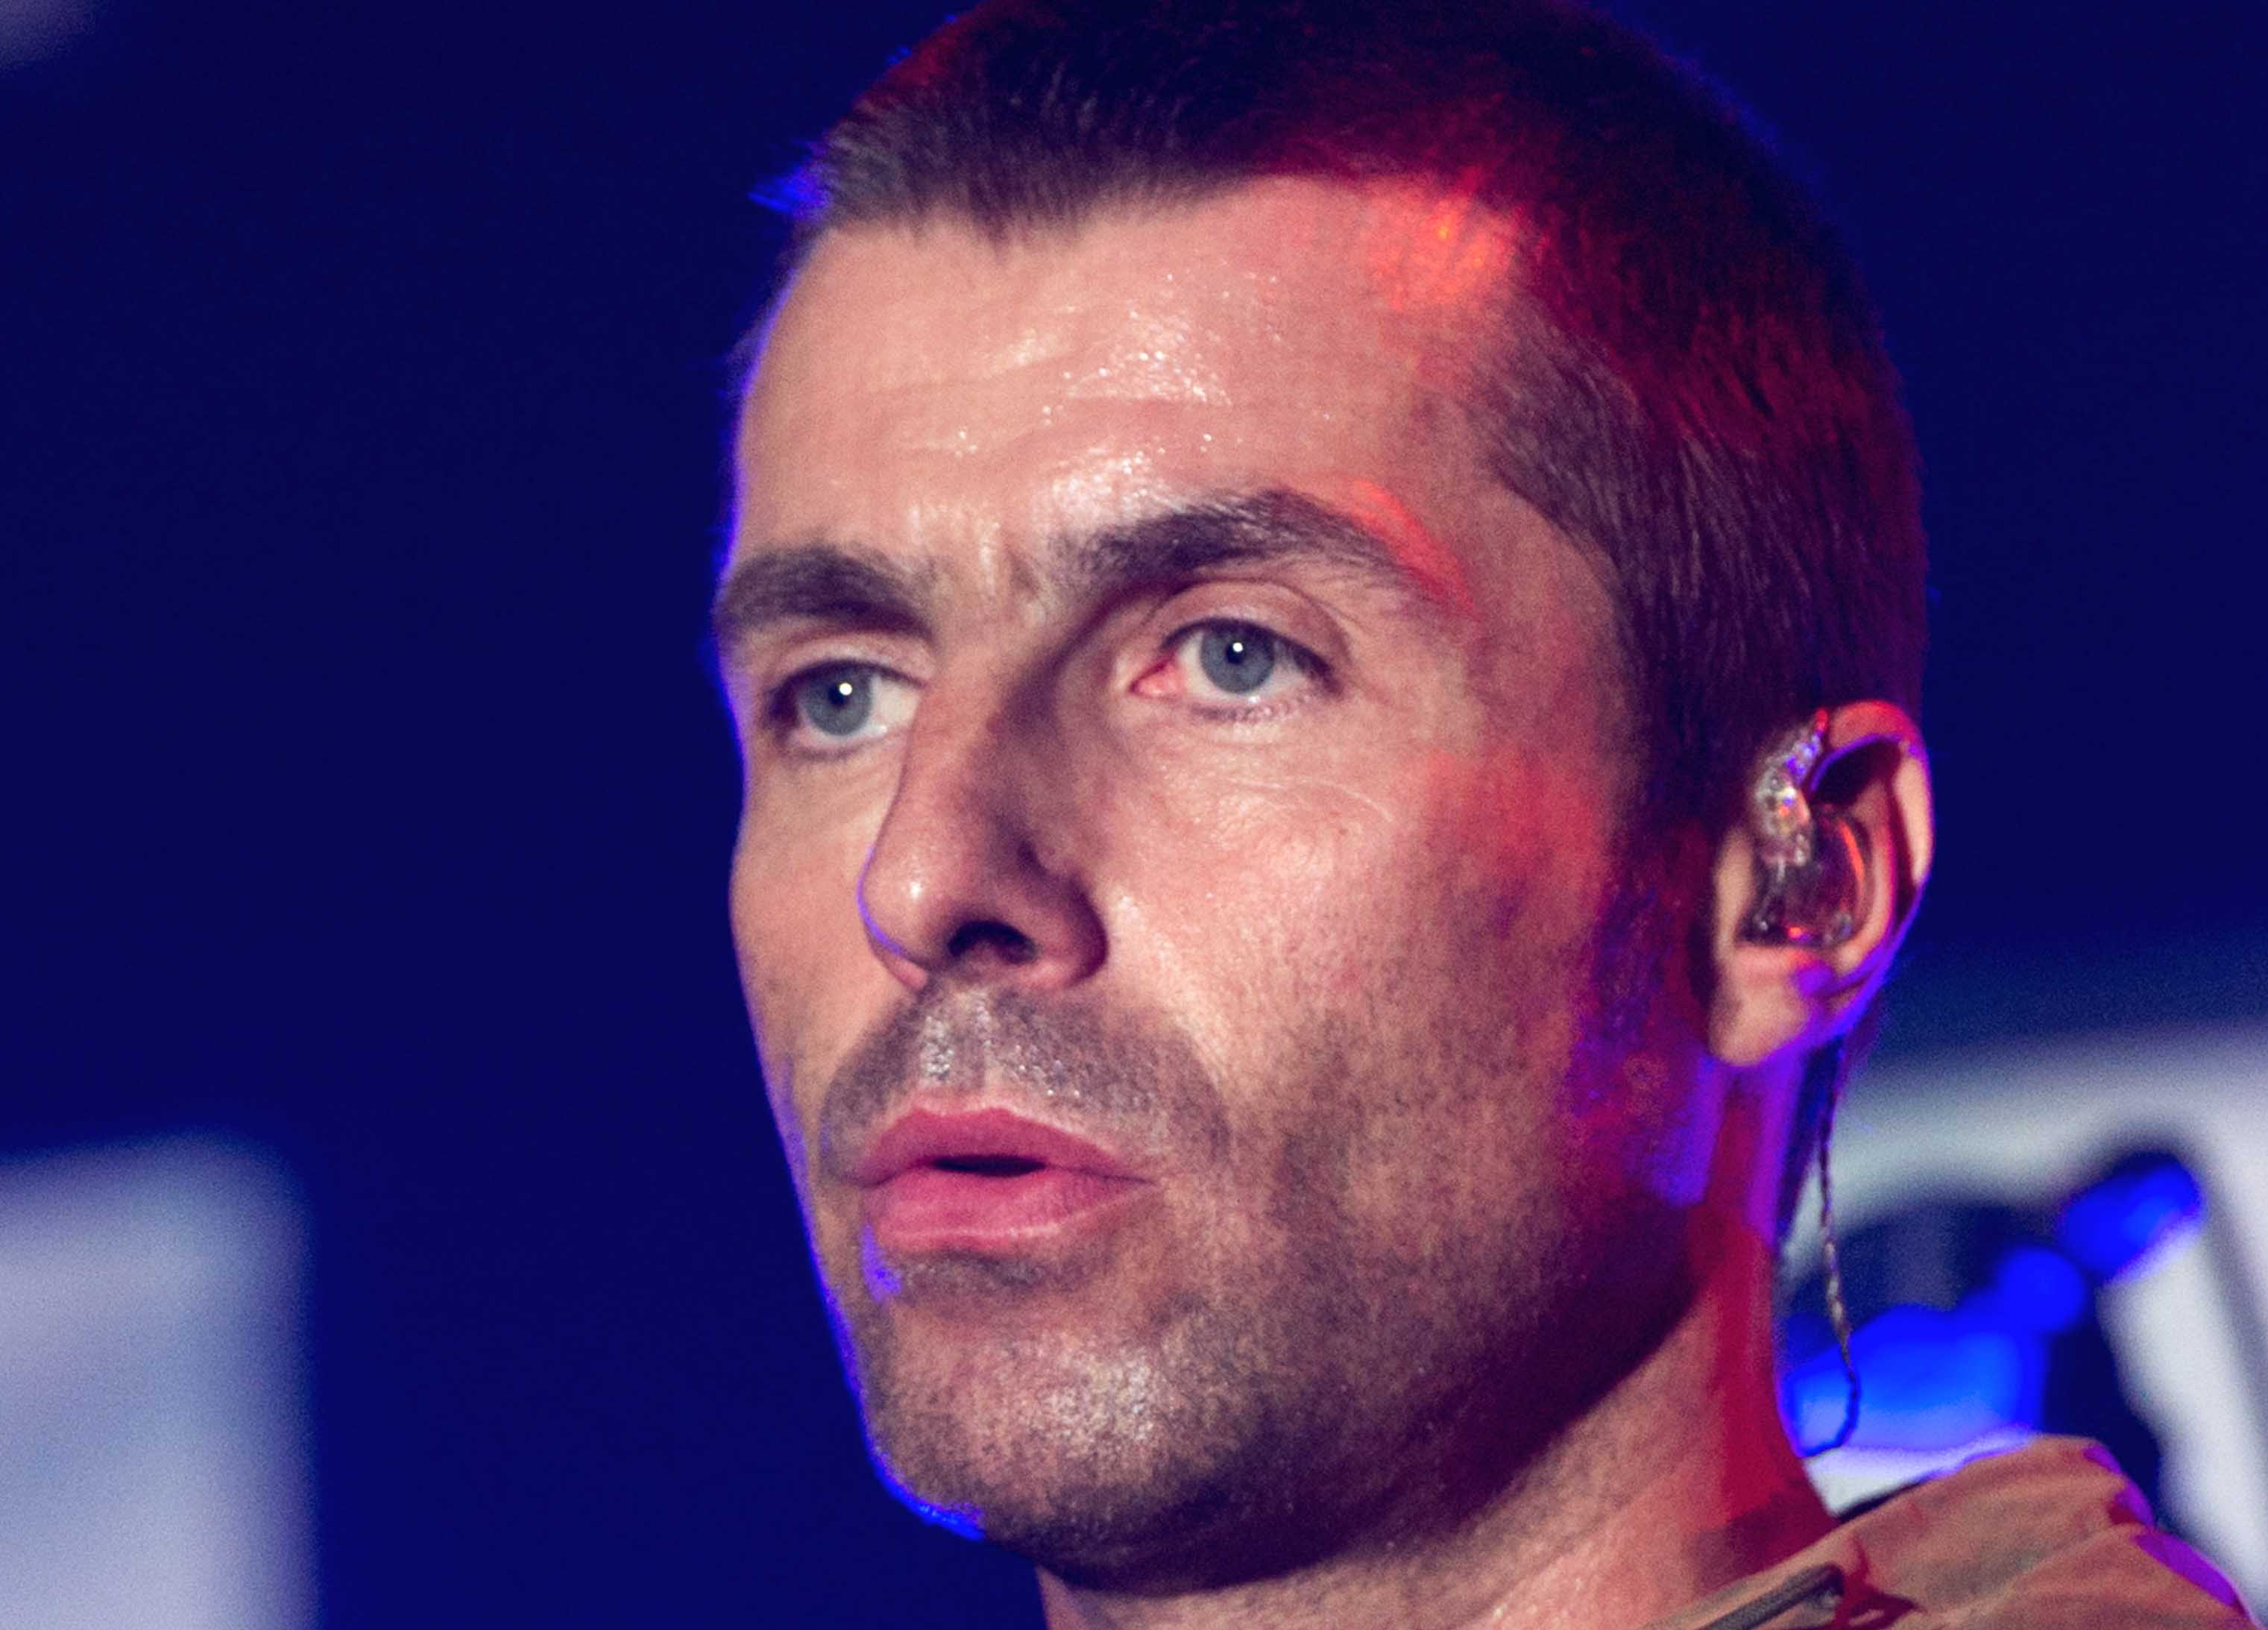 Liam Gallagher Calls Out Brother Noel Gallagher For Skipping One Love Manchester Benefit Concert